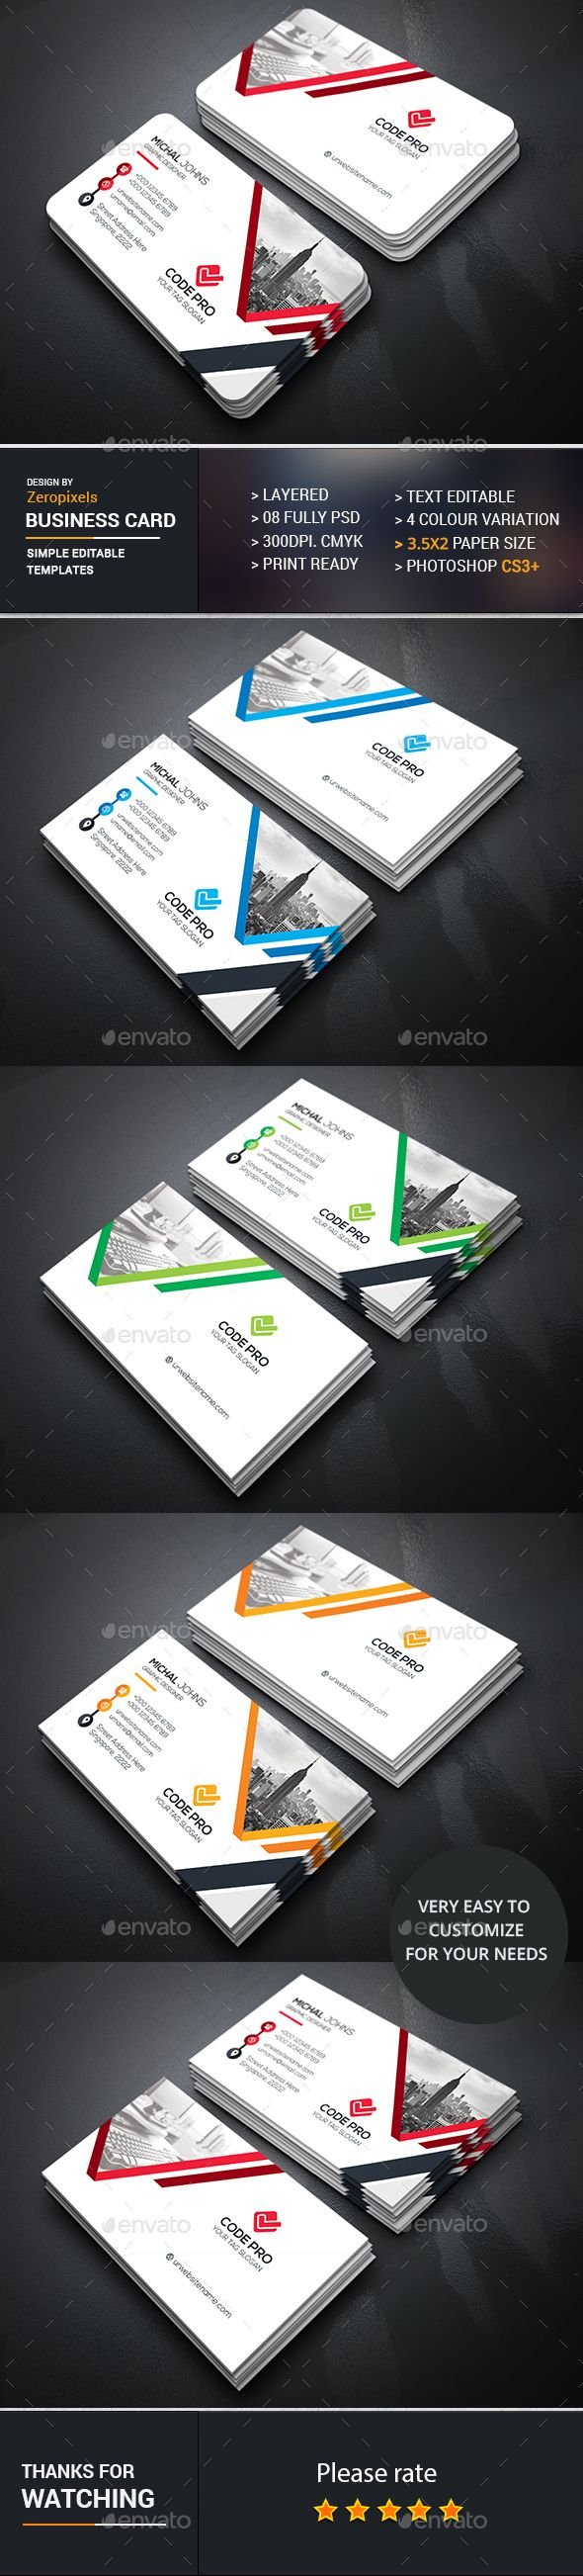 Business card design business cards template psd download here business card design business cards template psd download here https reheart Choice Image